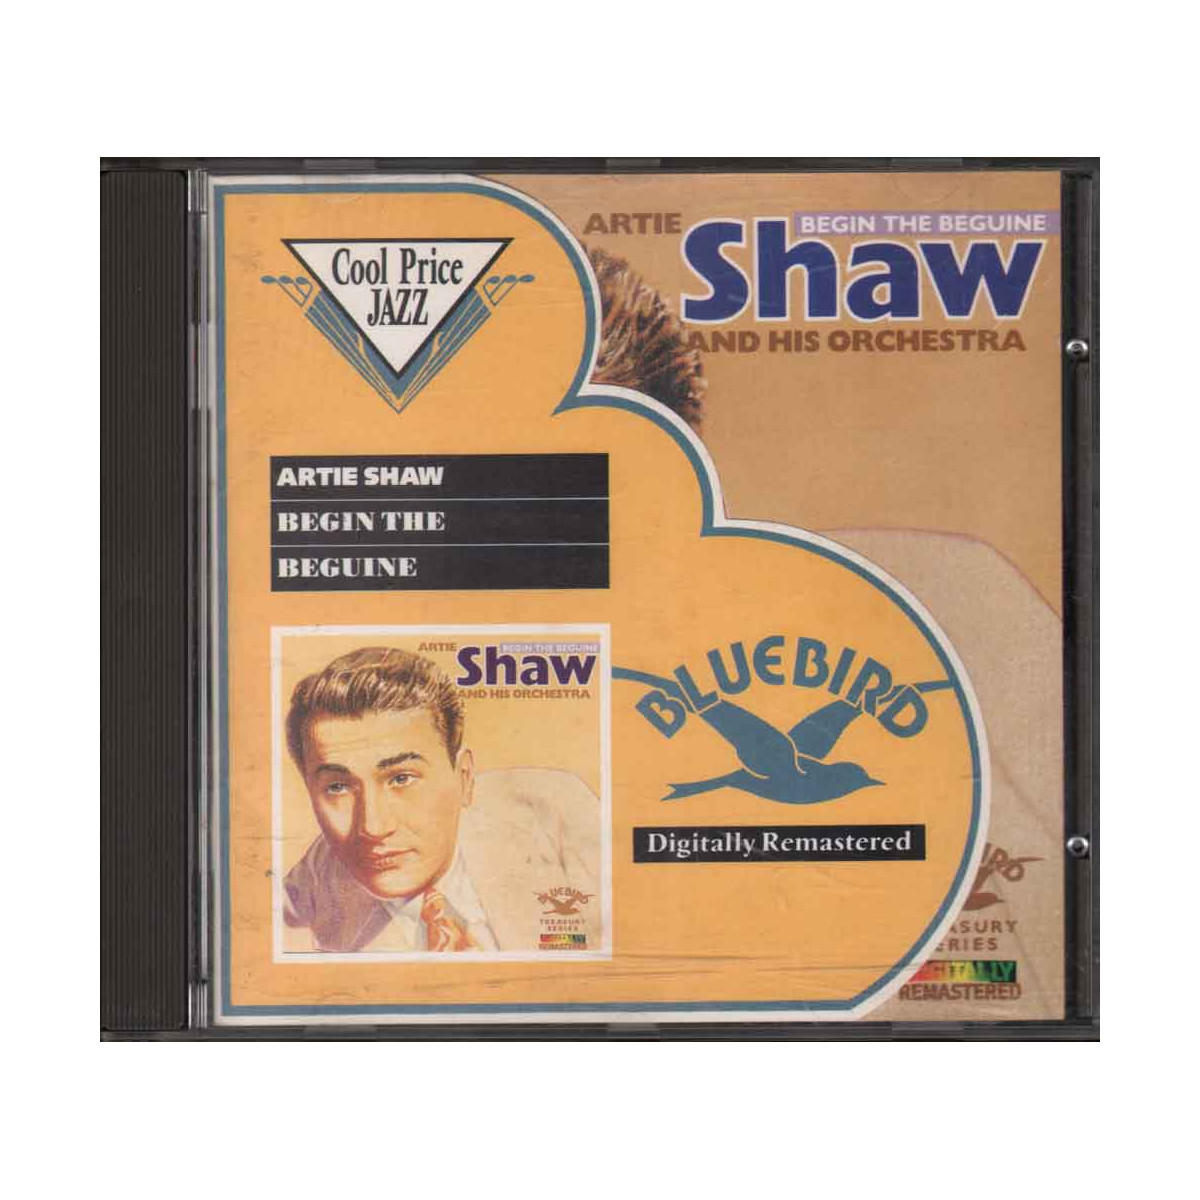 Artie Shaw and His Orchestra CD Begin The Beguine Nuovo 0035628627421